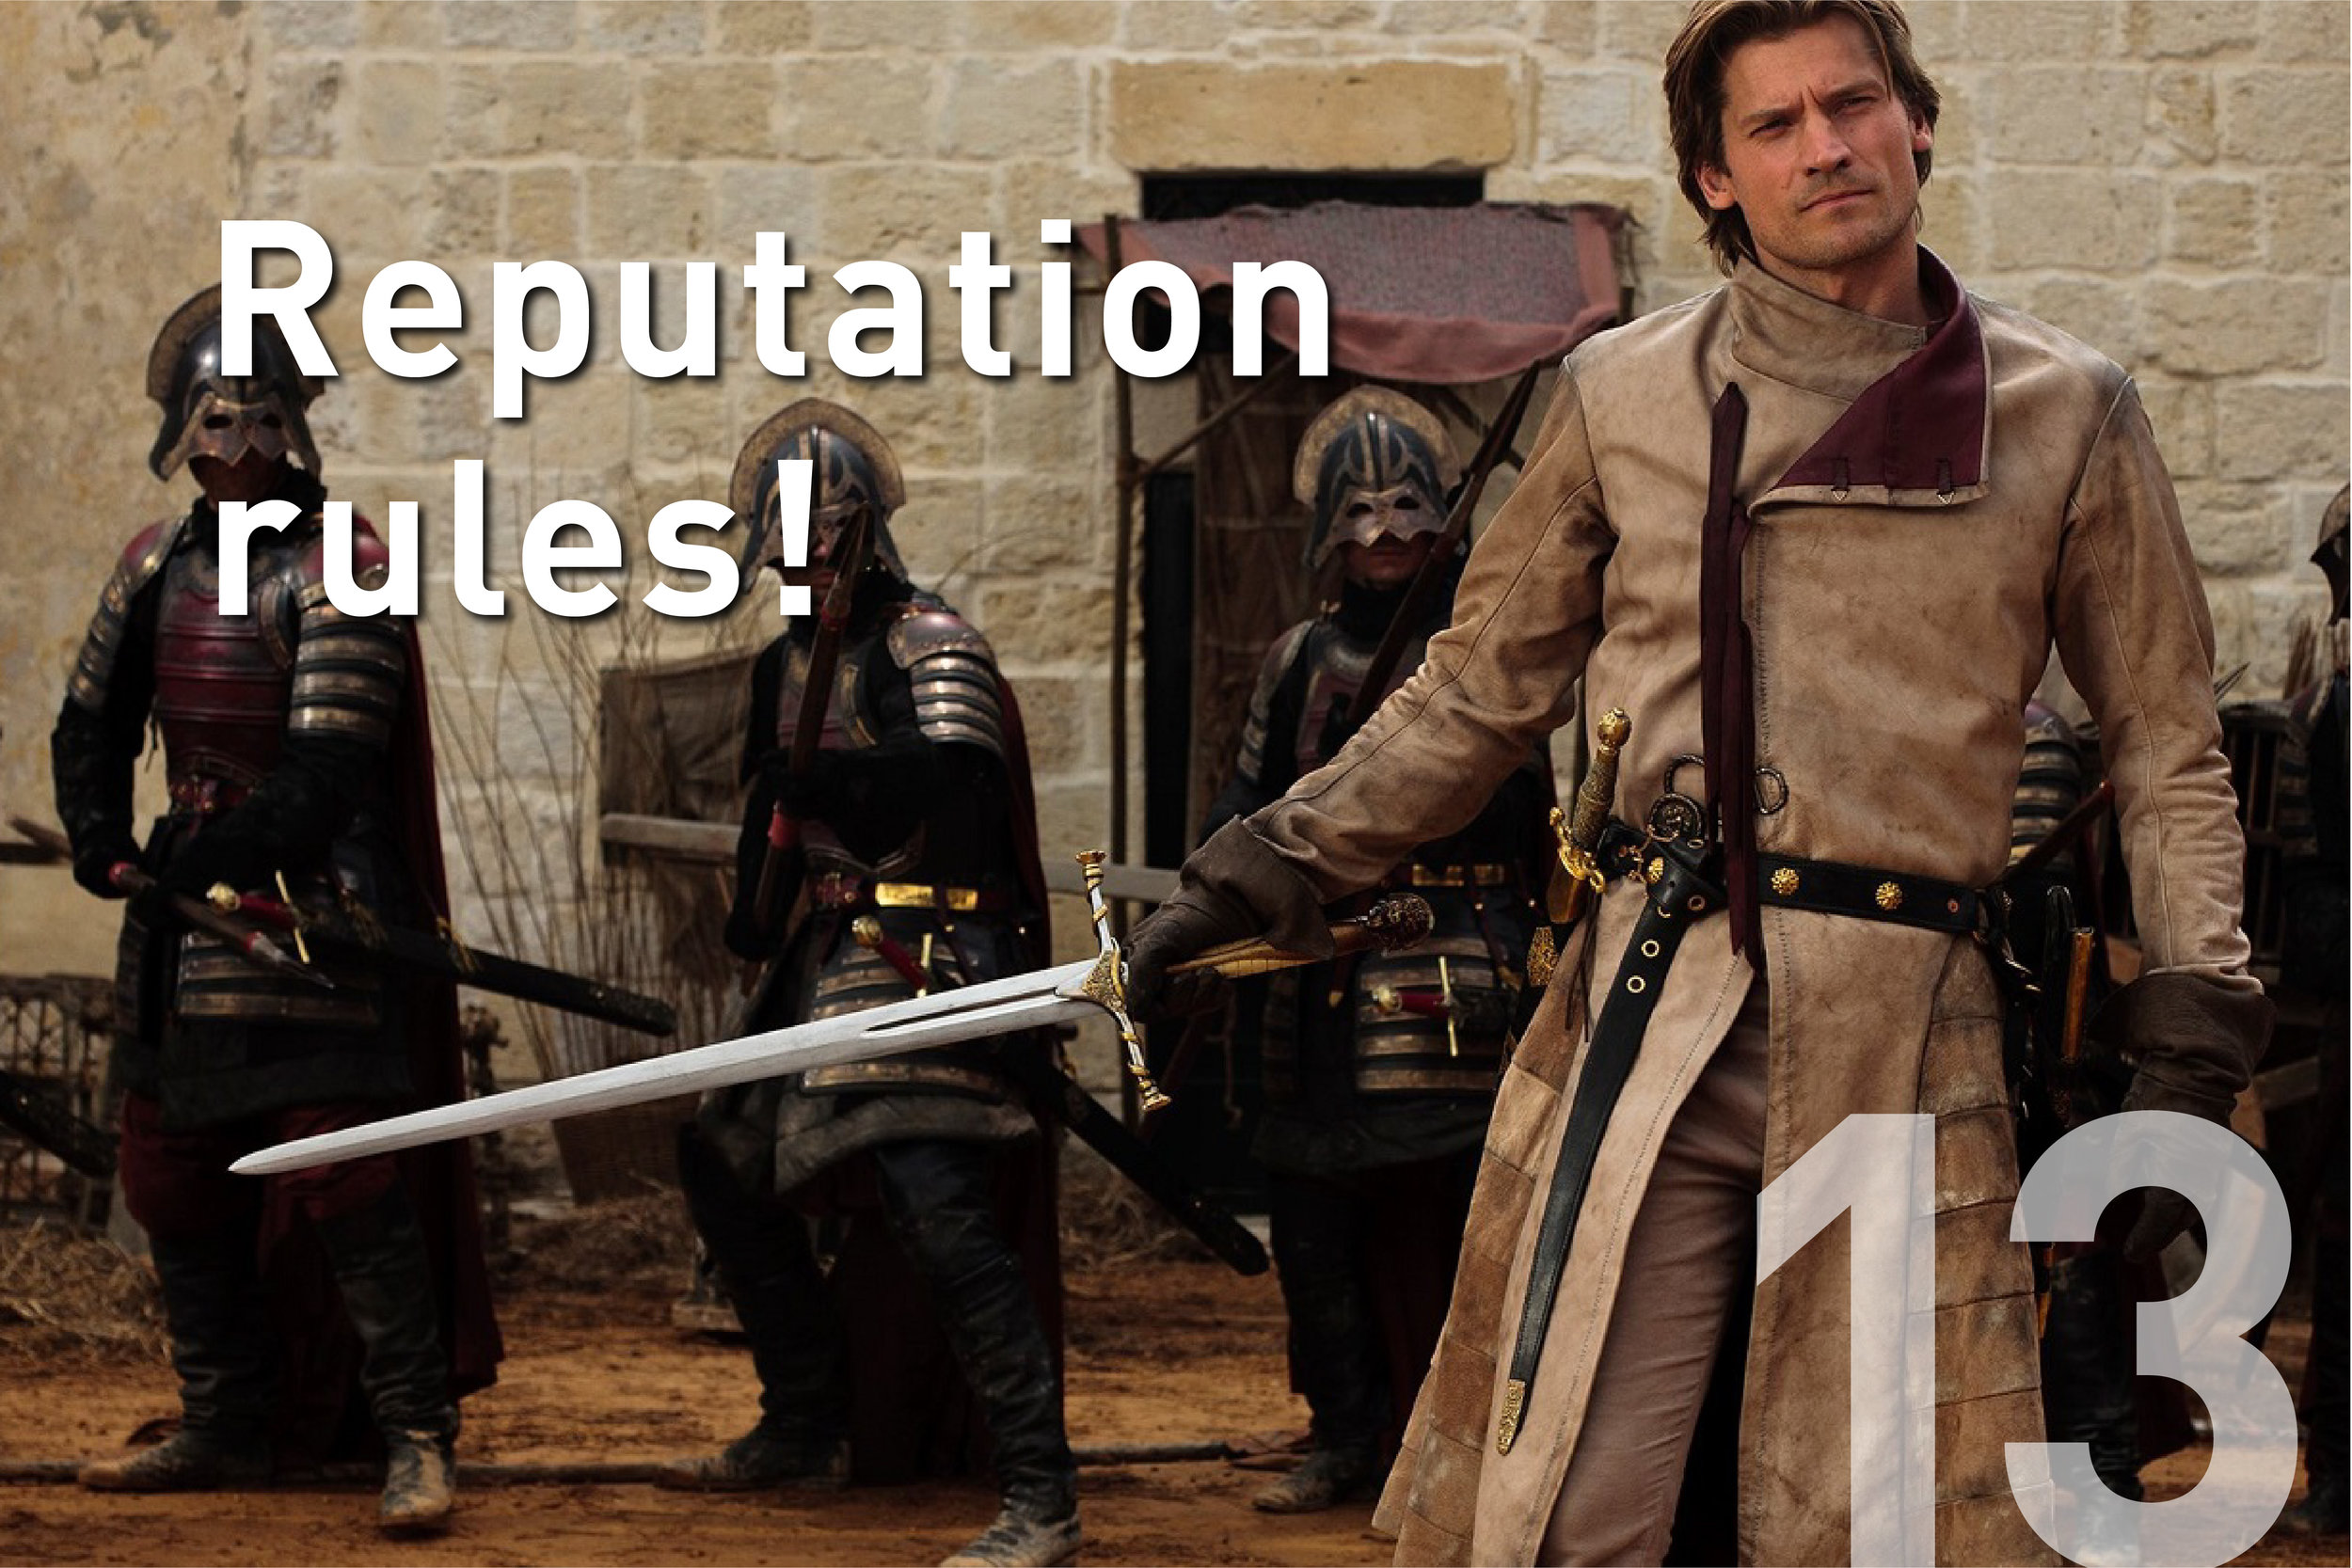 Game-of-Thrones-reputation-rules.jpg